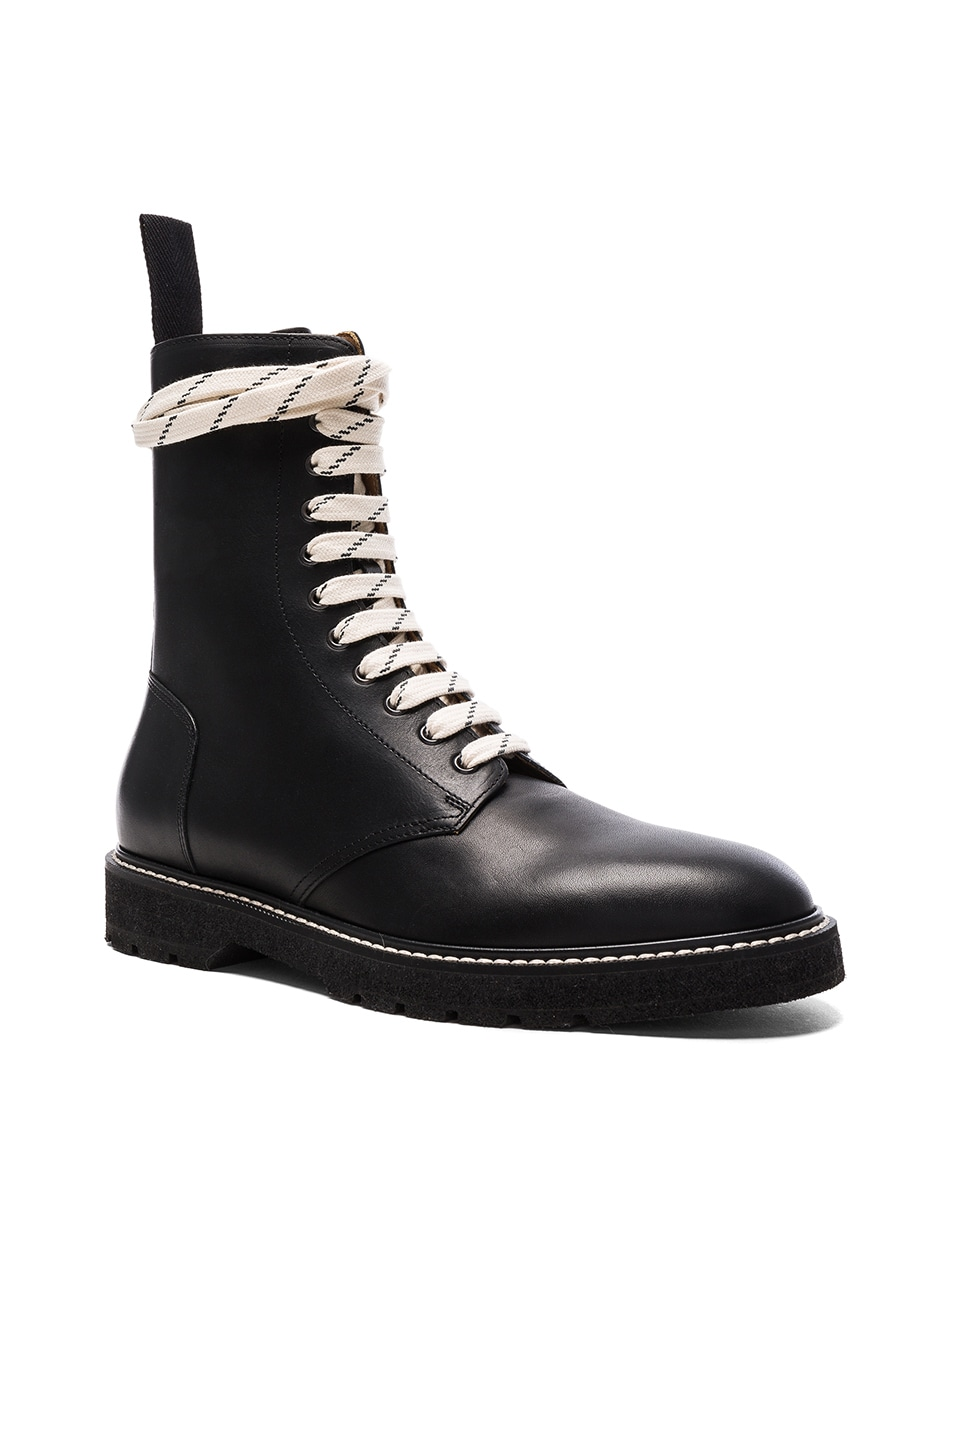 Image 1 of Maison Margiela Light Brushed Leather Combat Boots in Black